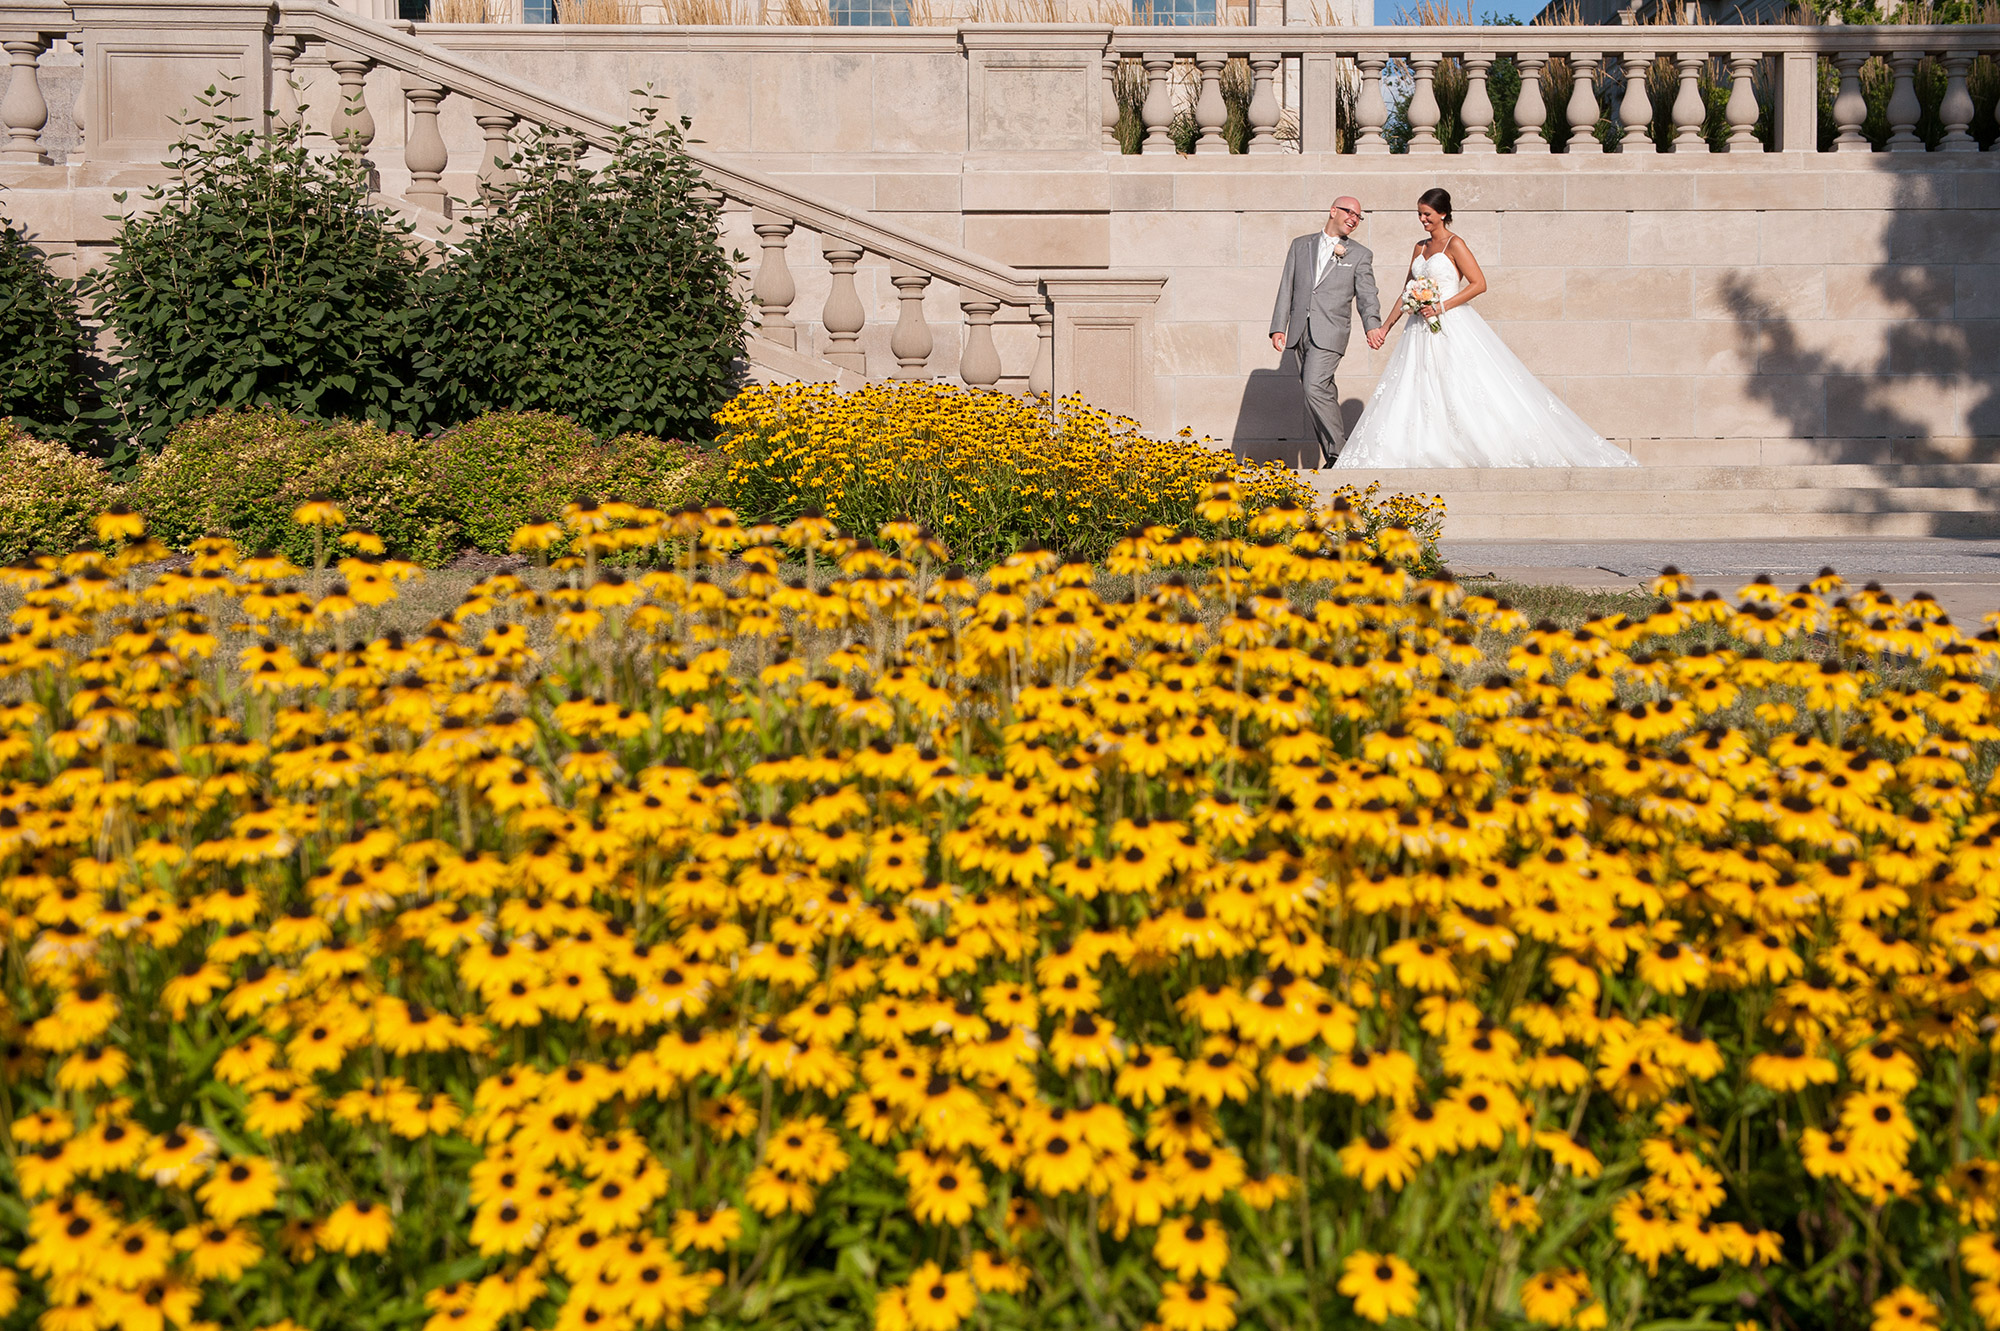 minneapolis-wedding-photographer-mark-kegans-0047.jpg